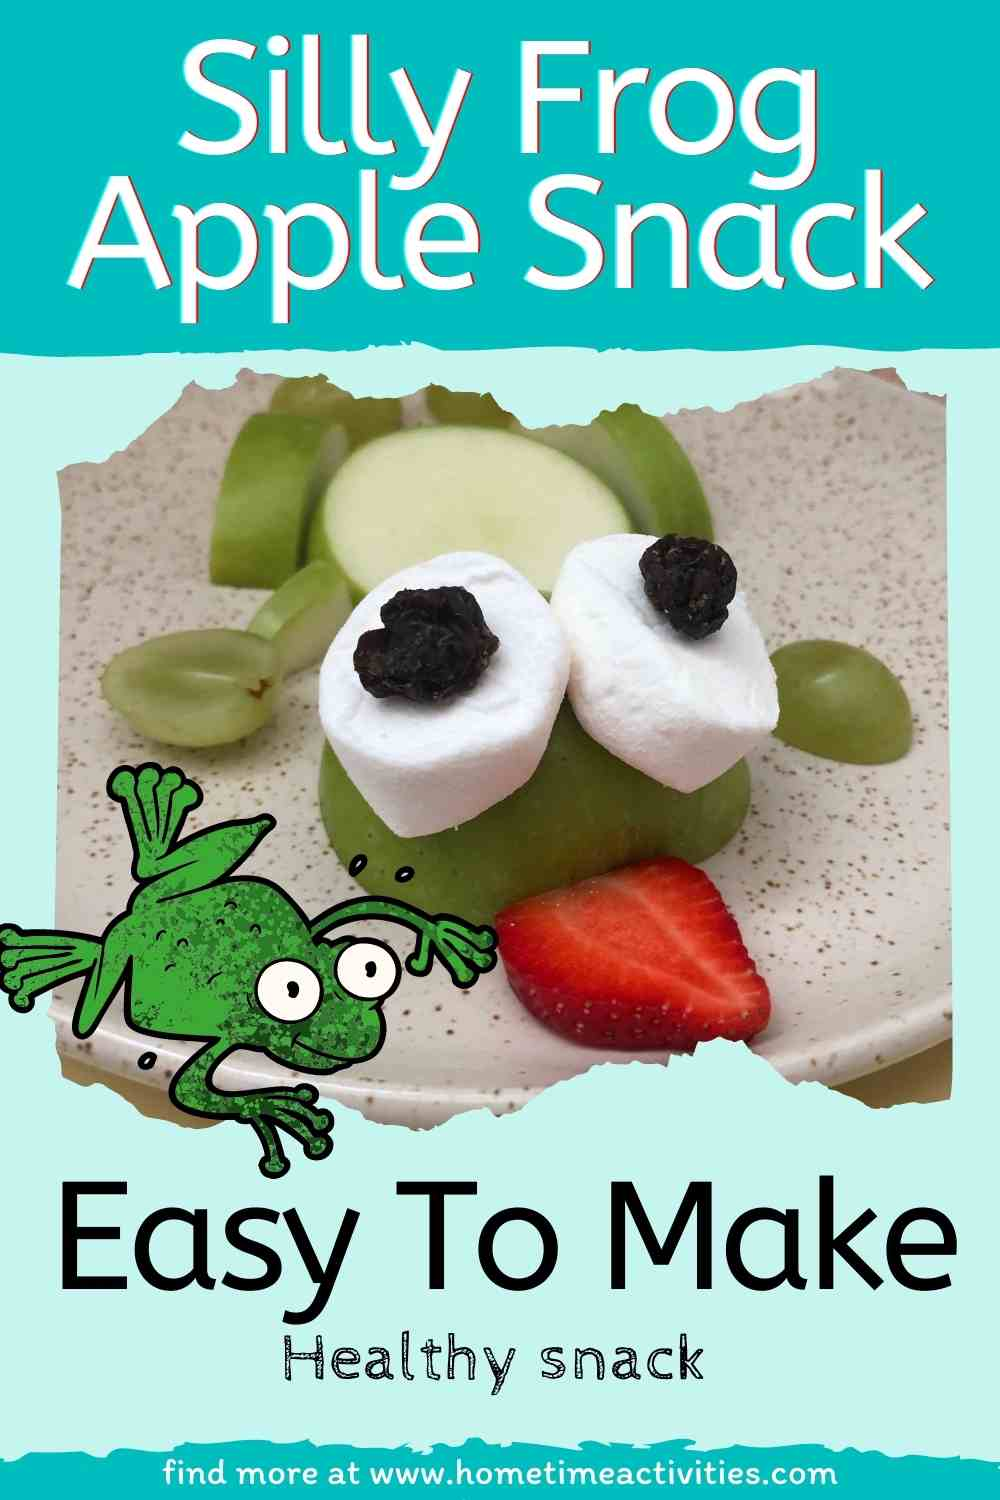 Frog snack made with apples and fruit for kids